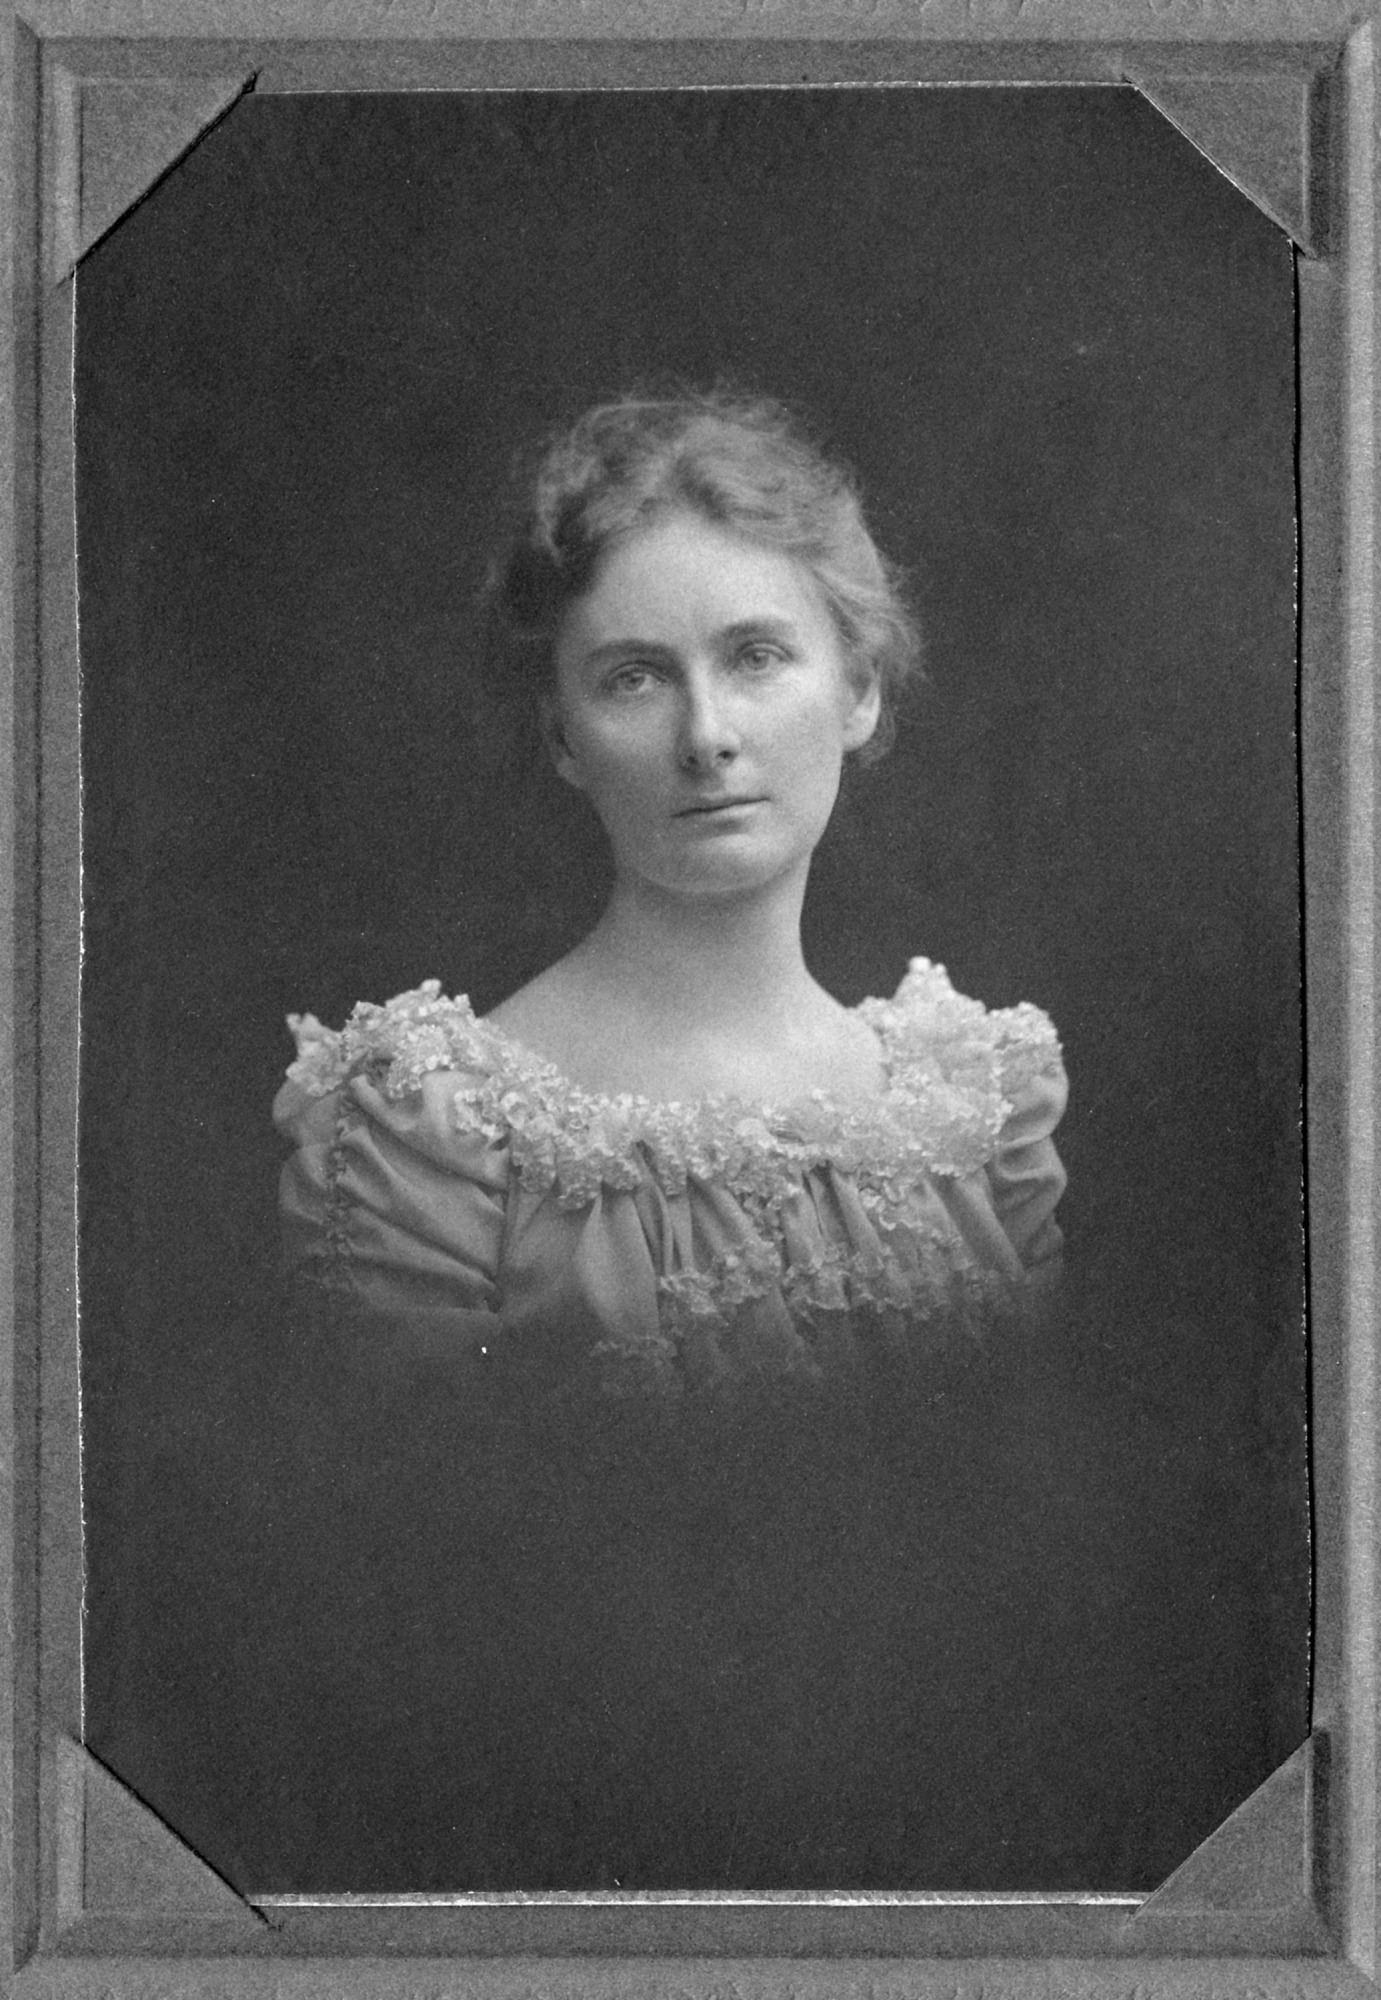 Florence Bascom (1862-1945), Smithsonian Institution Archives, SIA Acc. 90-105 [SIA2007-0184].